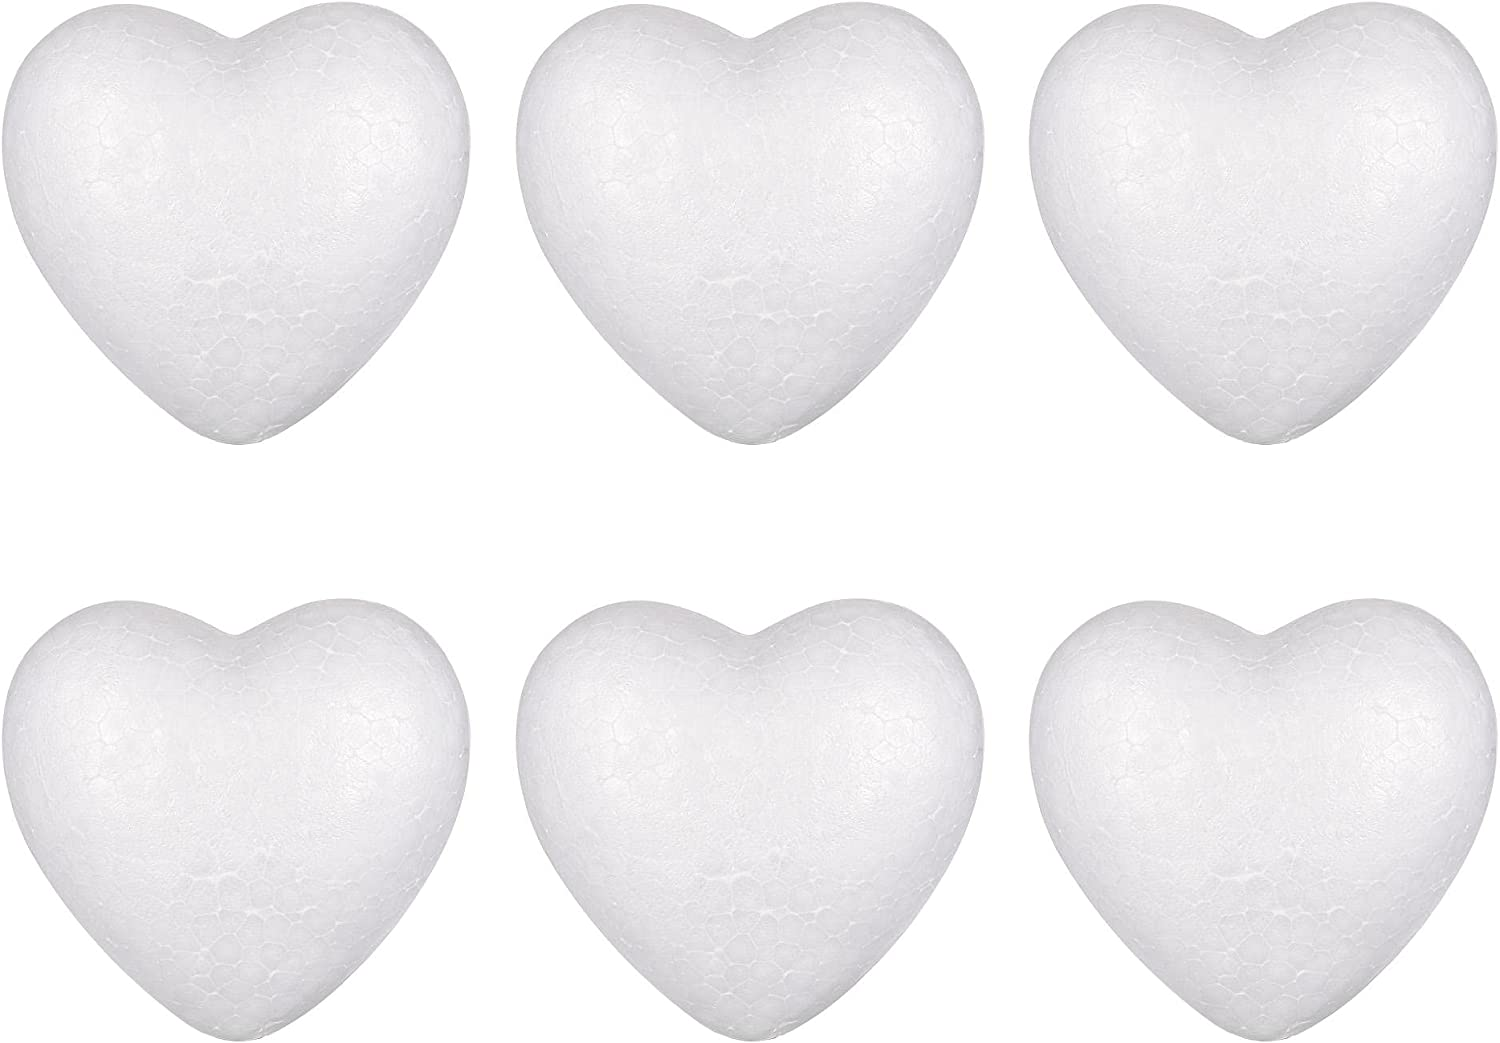 uxcell Polystyrene Heart Foam Ball Height for Art 10cm Ranking TOP8 Solid Sale SALE% OFF DIY